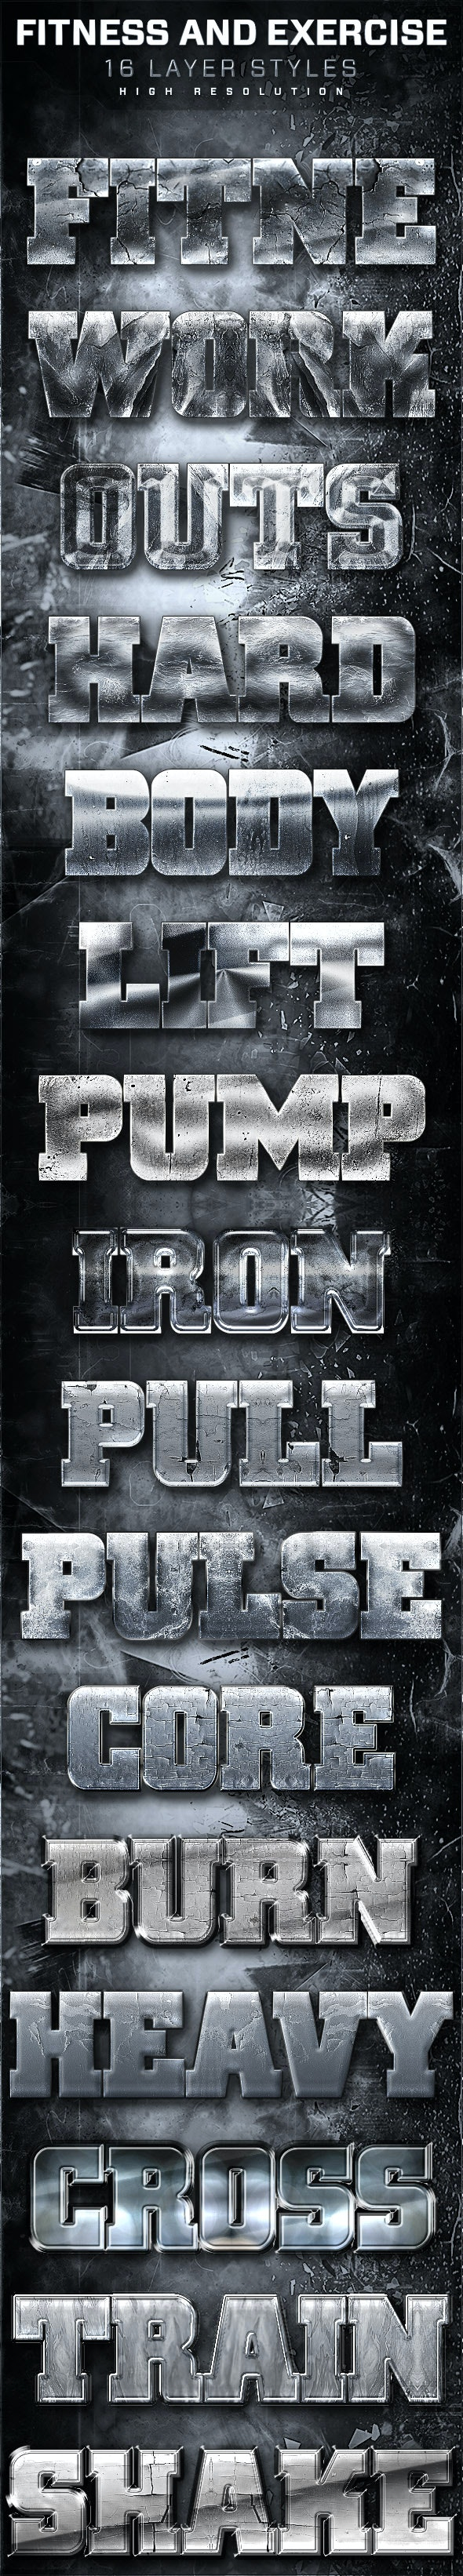 16 Fitness And Exercise Layer Styles 4 - Text Effects Styles